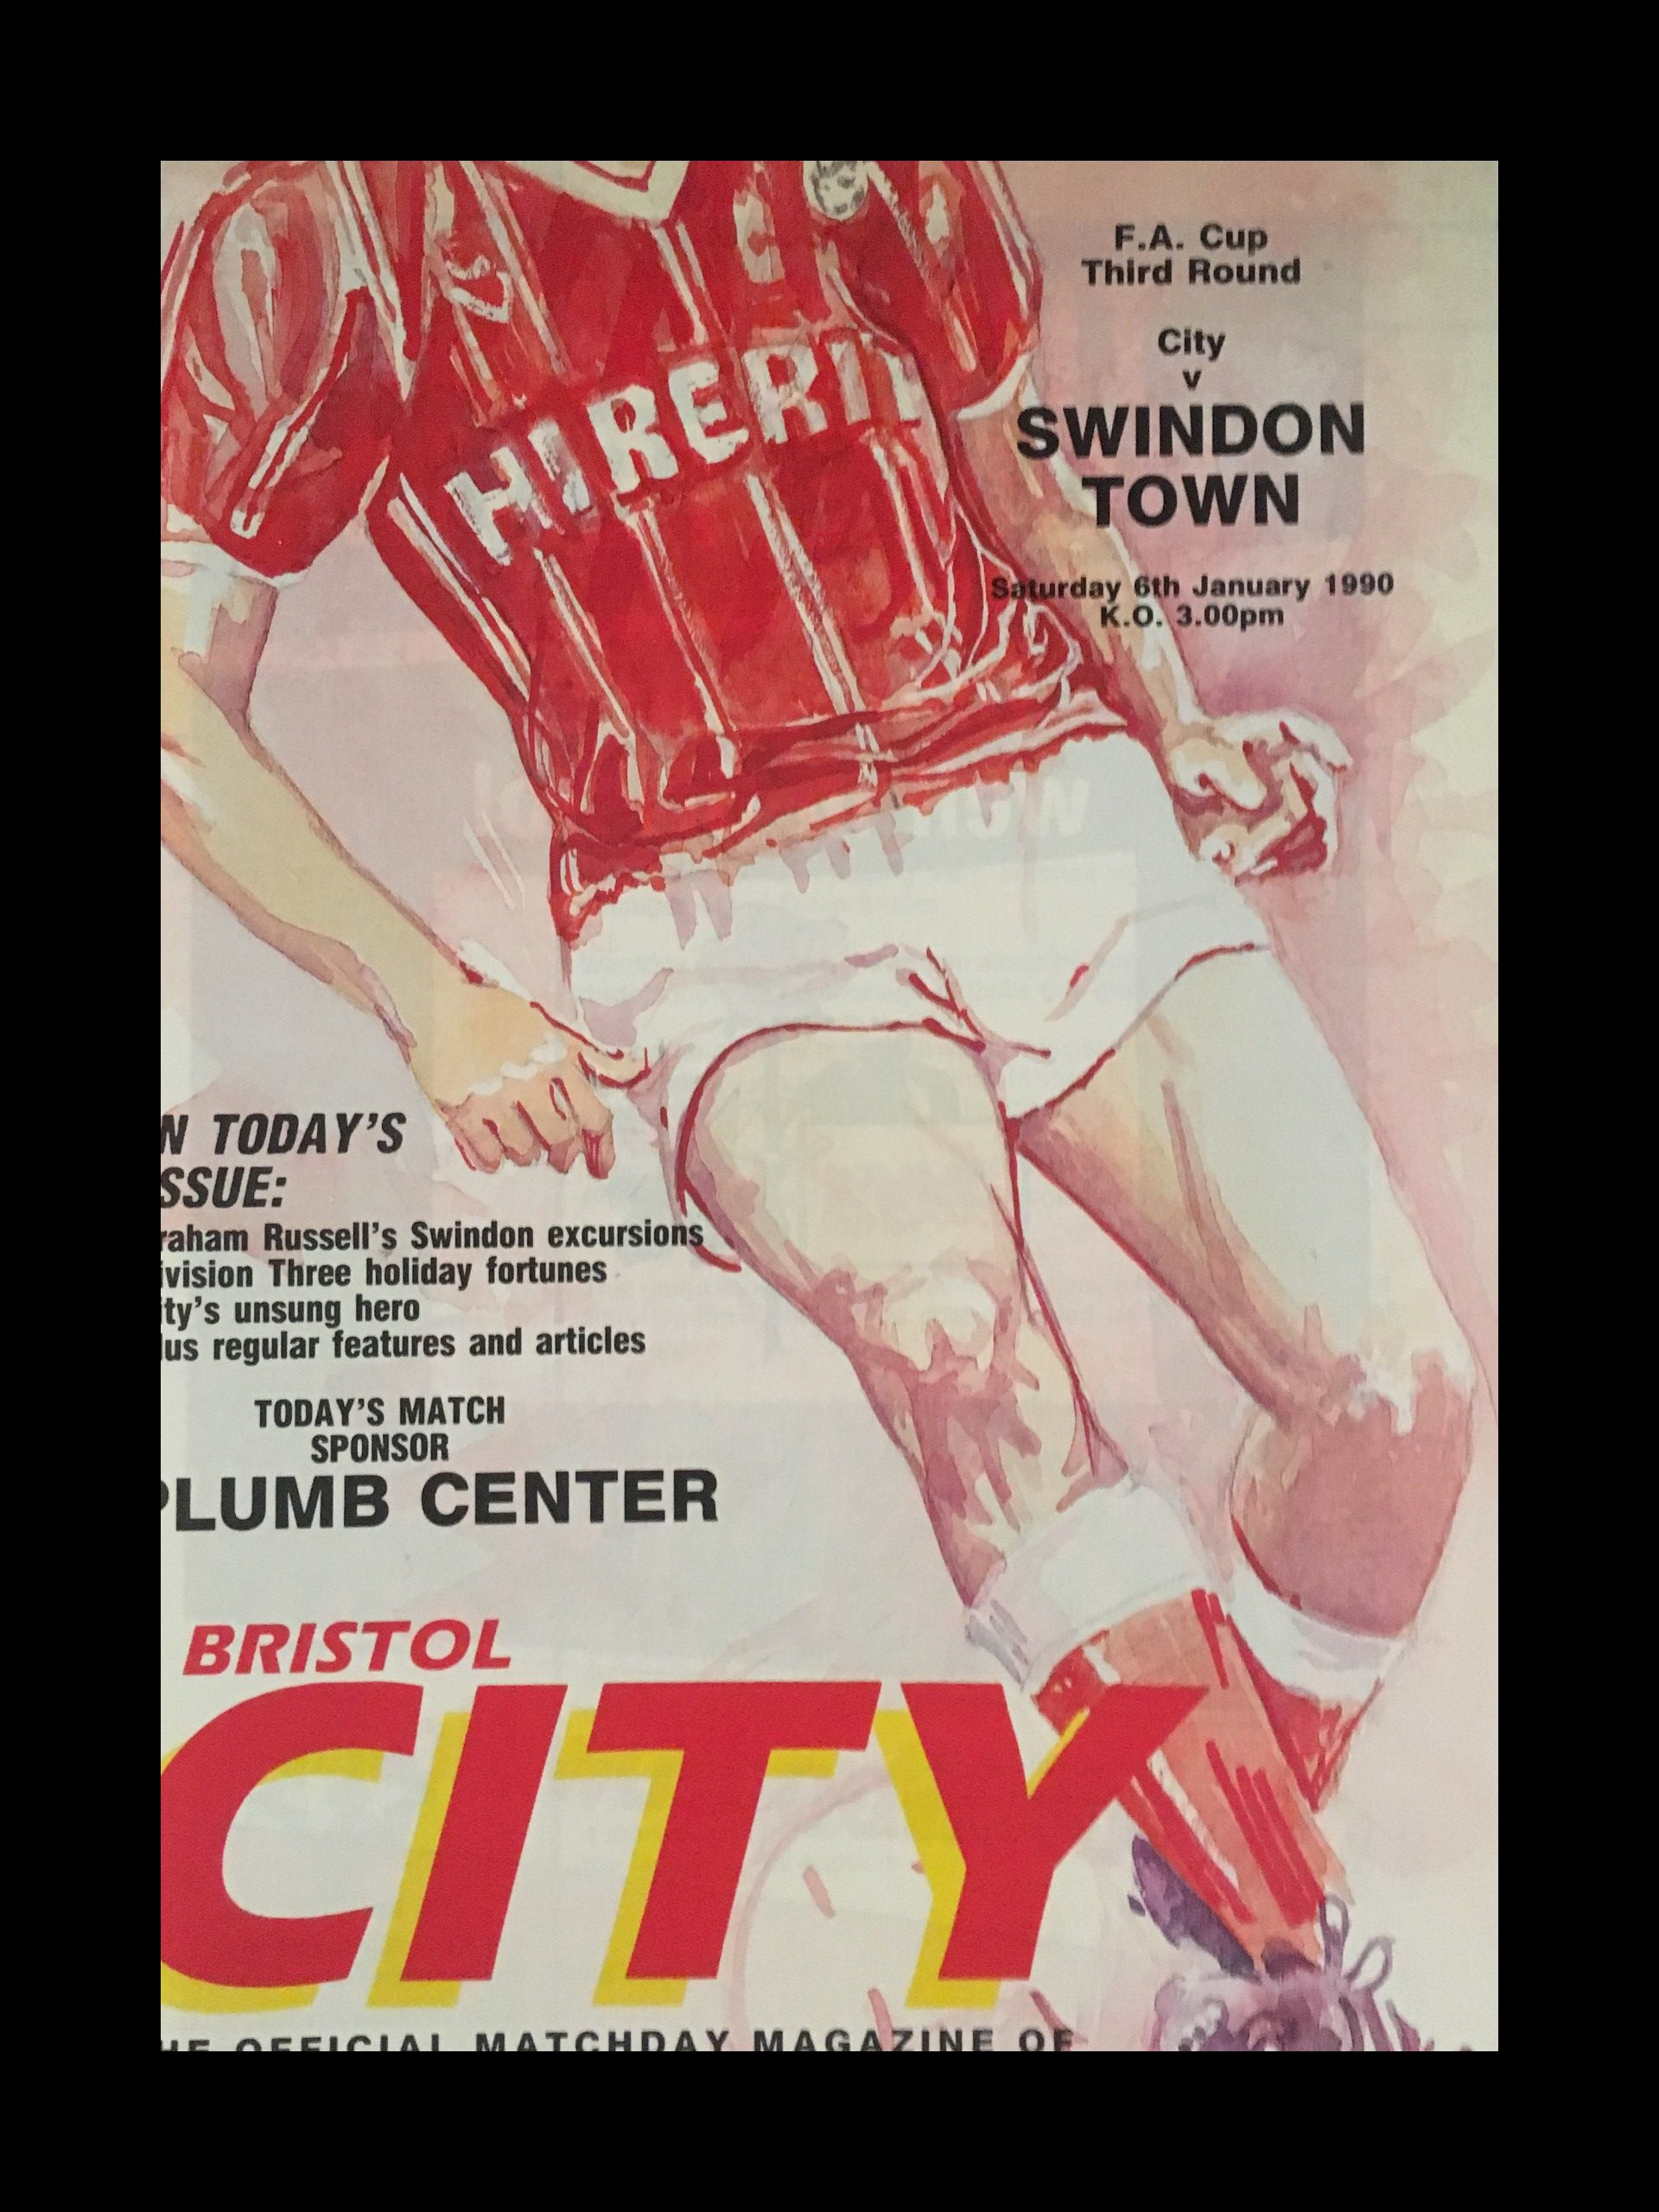 Bristol City v Swindon Town 06-01-1990 Programme